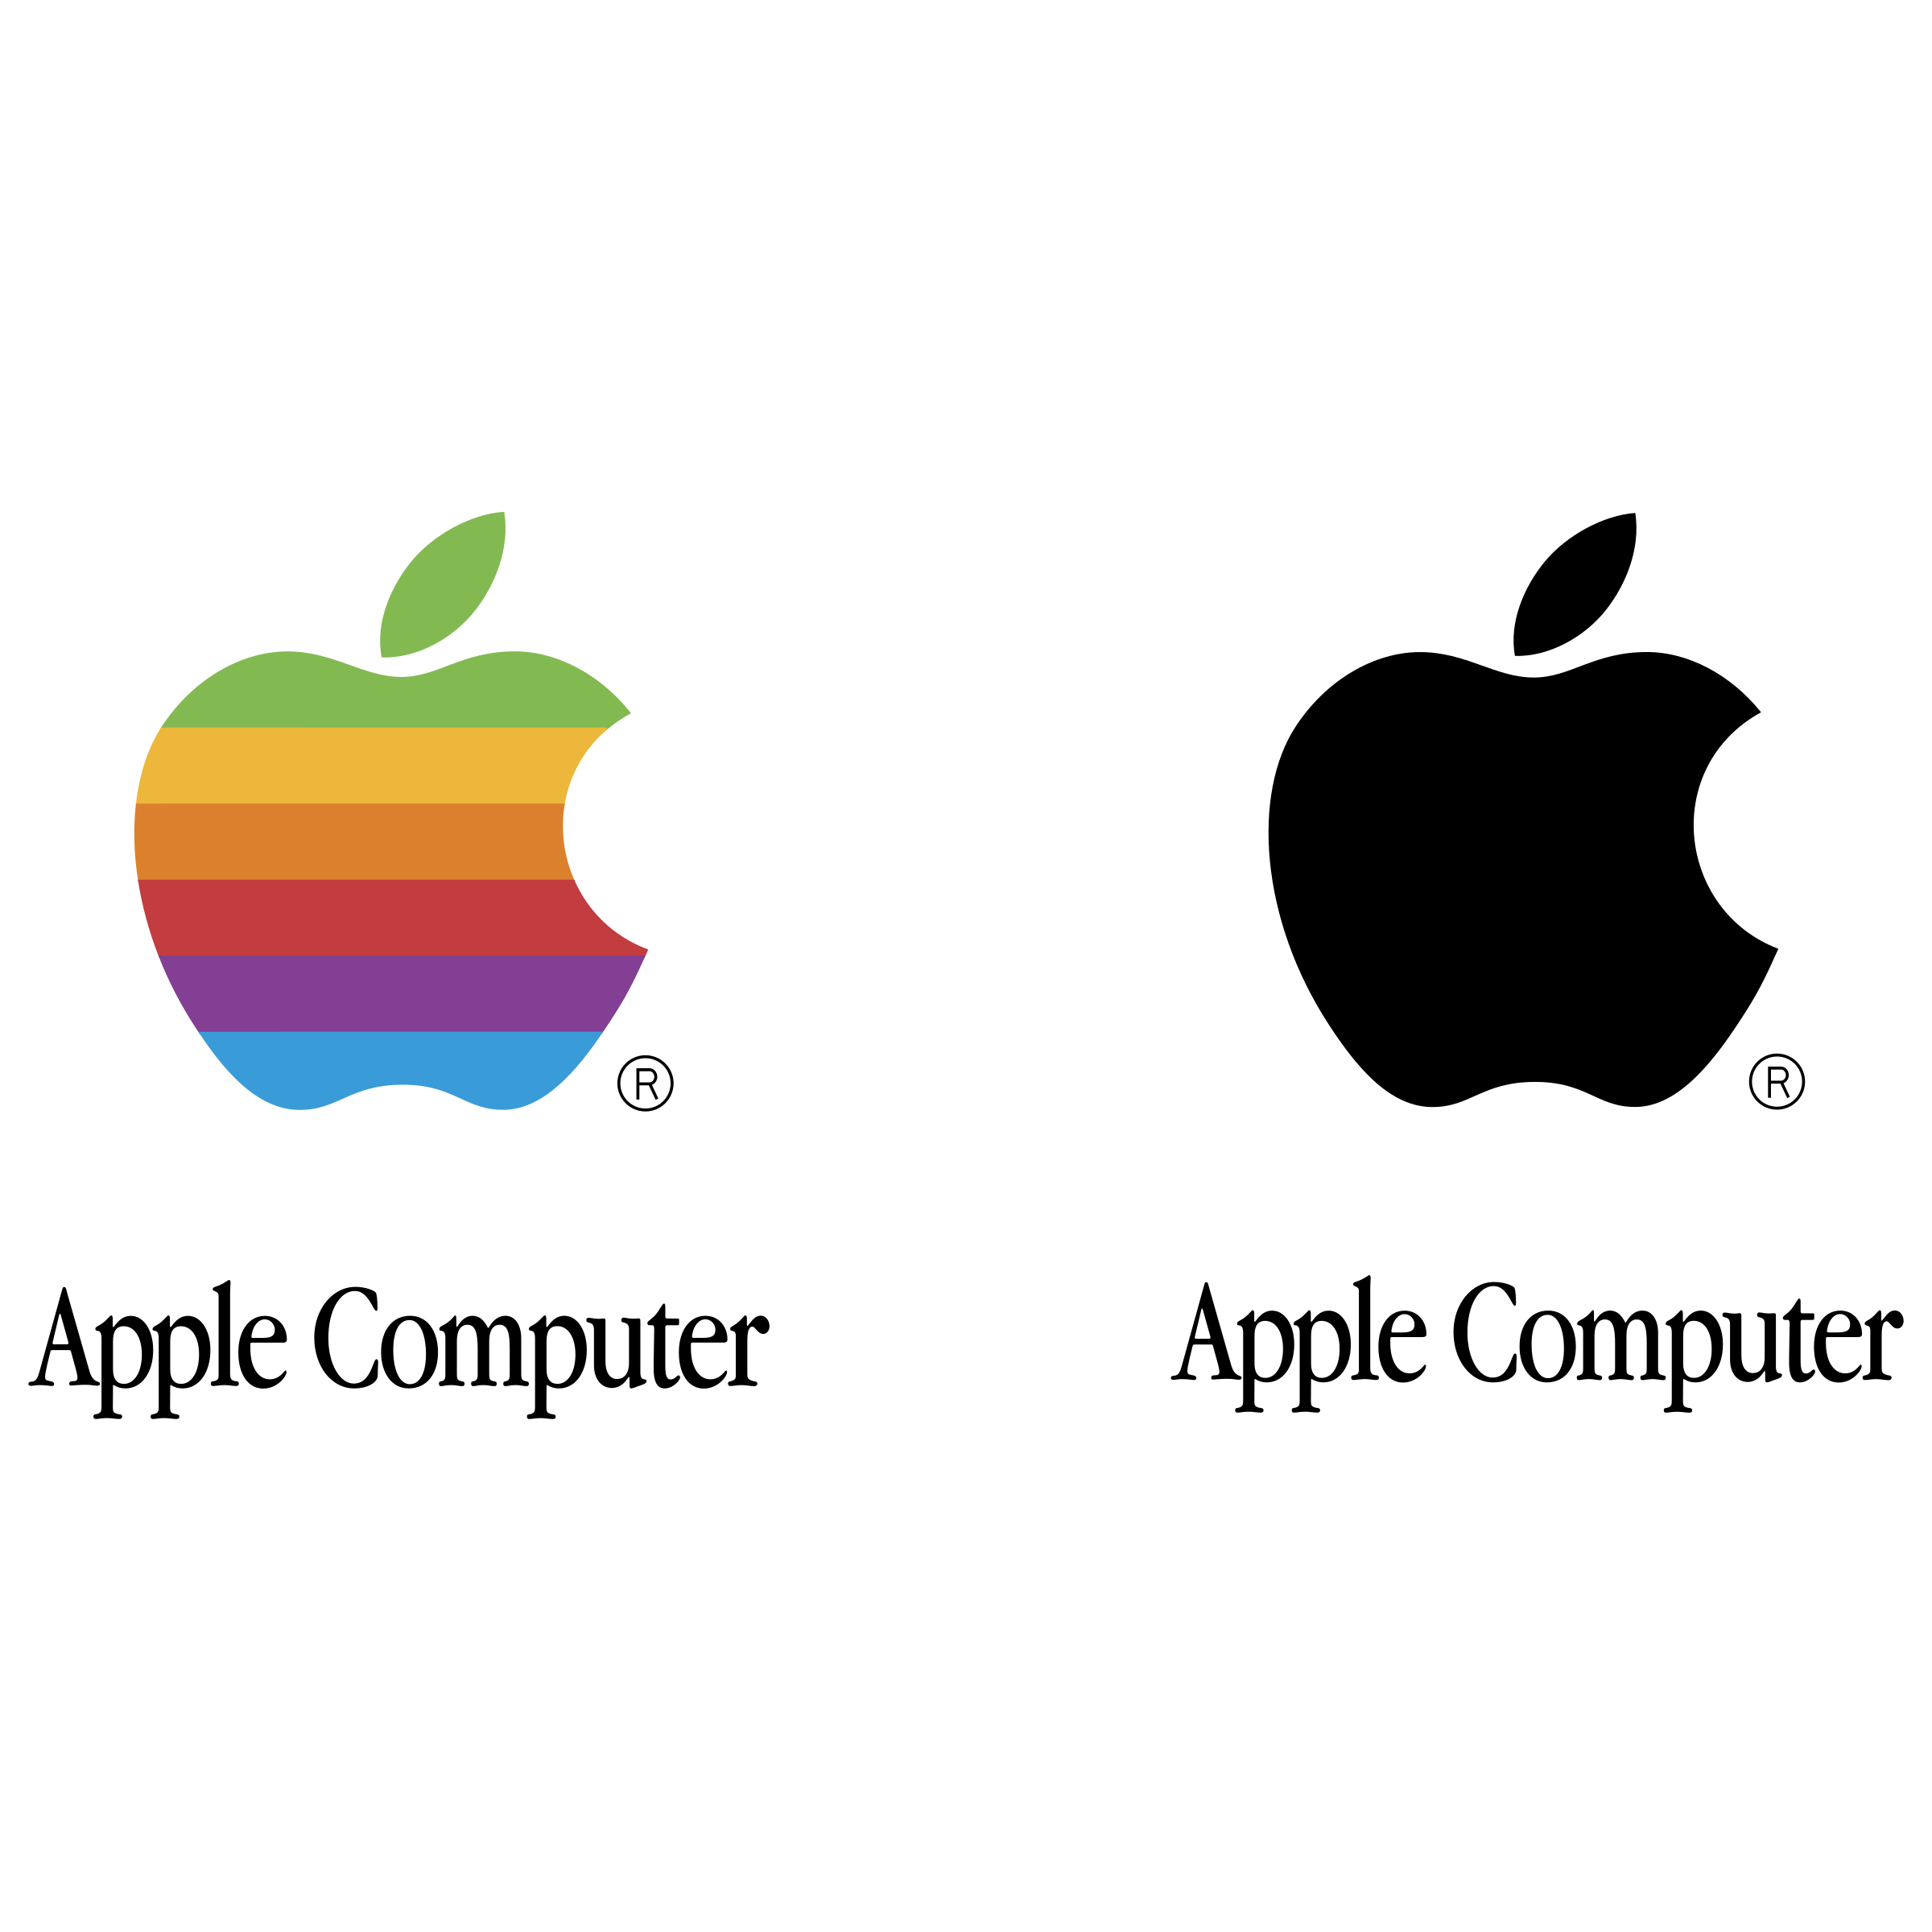 apple logo png transparent & svg vector - freebie supply